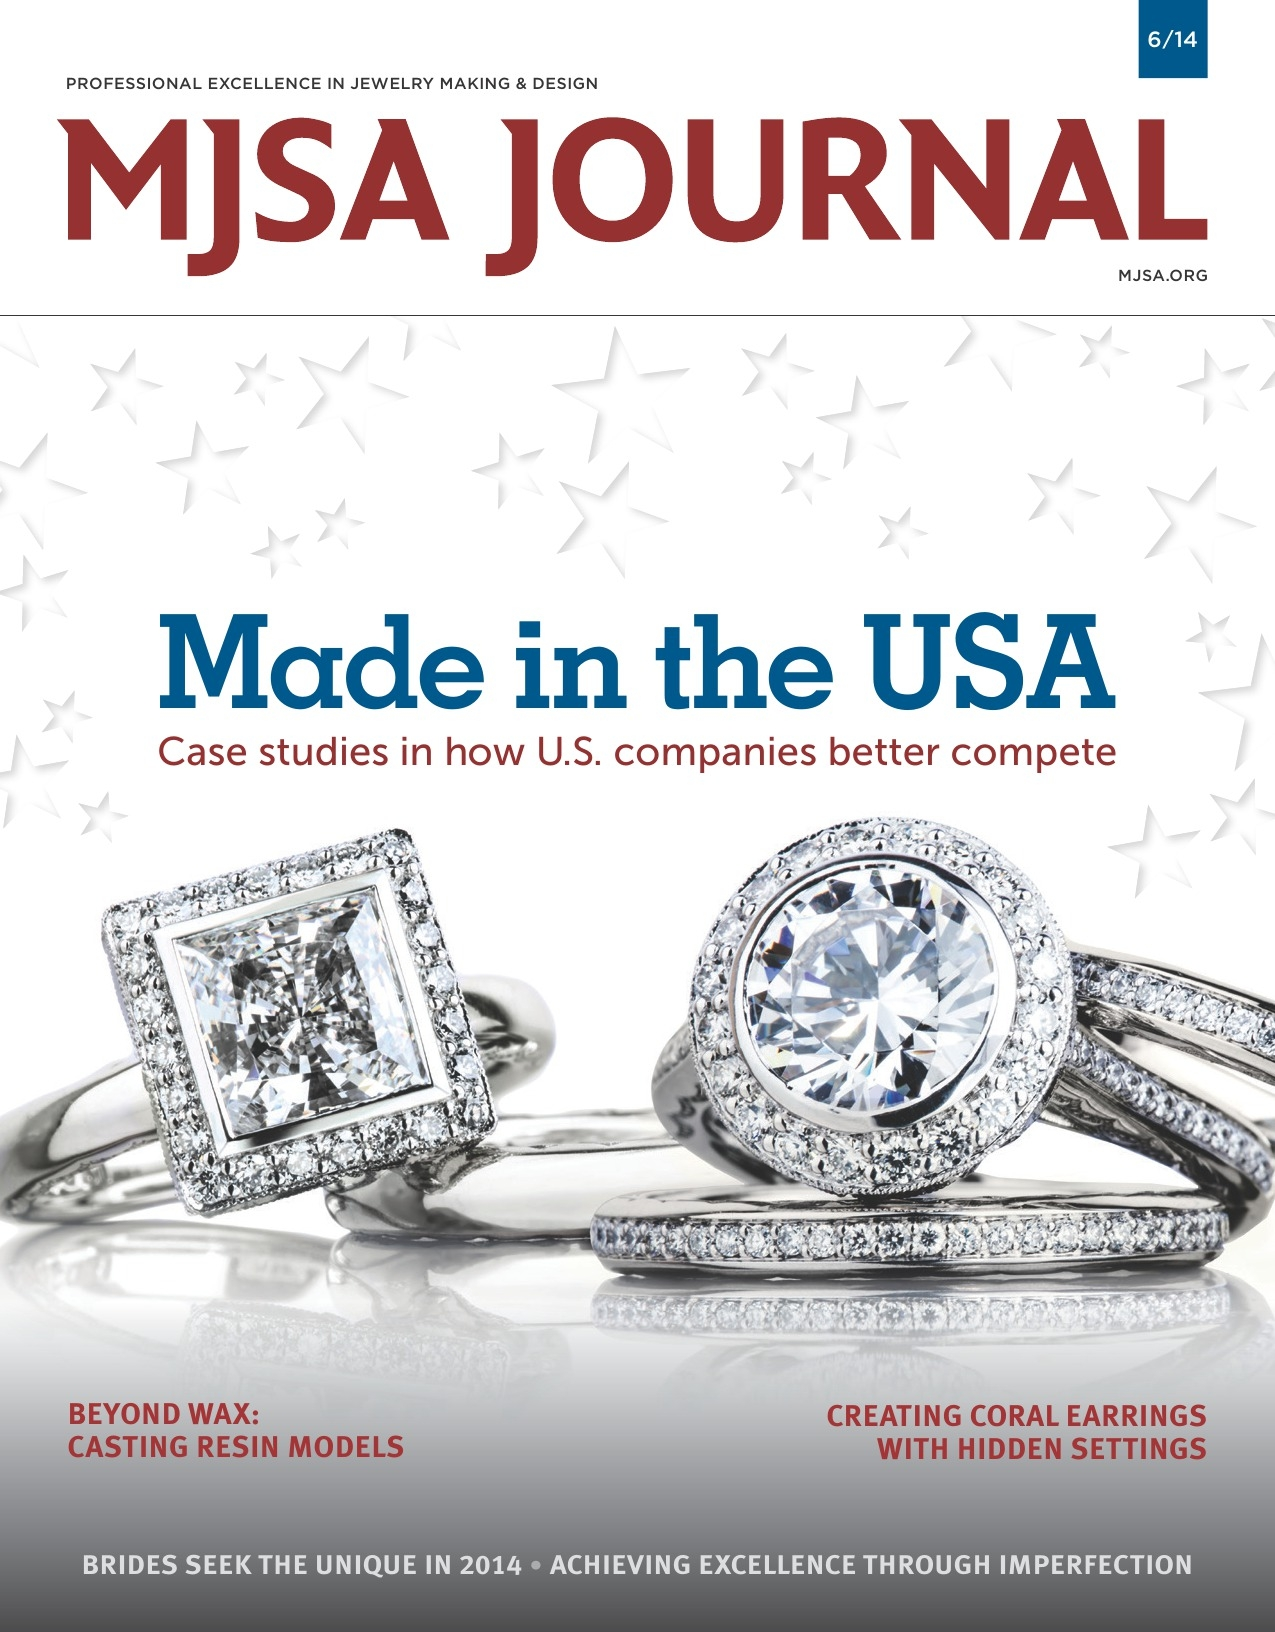 MJSA Journal June 2014